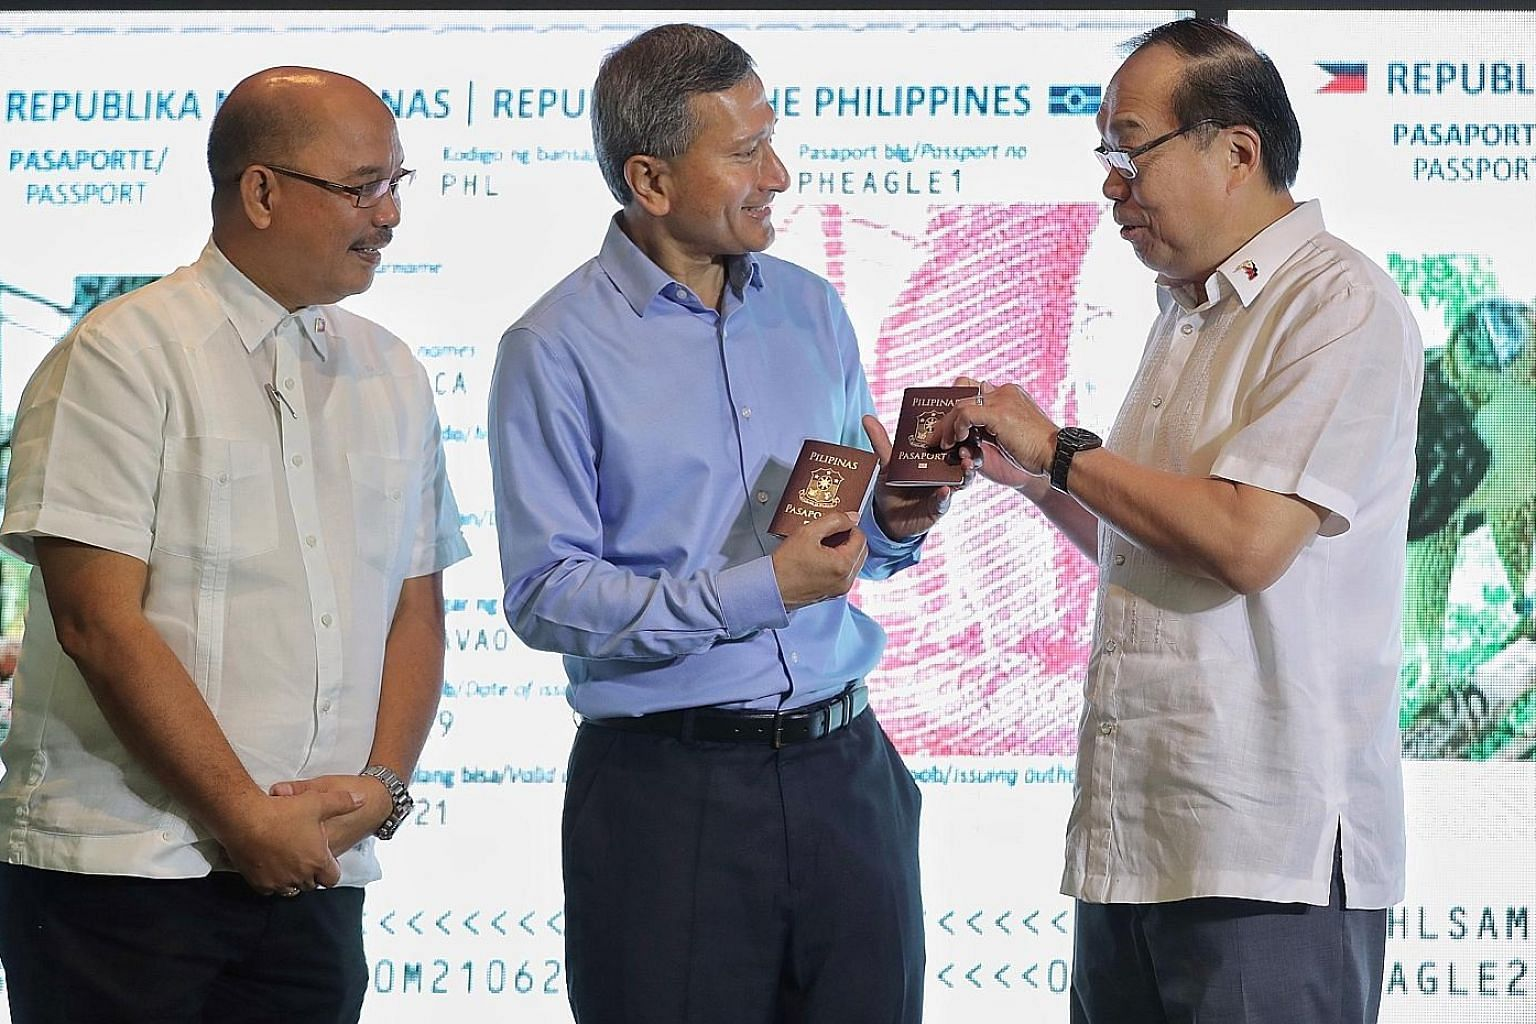 """Foreign Minister Vivian Balakrishnan receiving the """"passports"""" of the two eagles - Geothermica and Sambisig (right) - from Philippine Ambassador Joseph Del Mar Yap at Jurong Bird Park yesterday. With them is Mr Ricardo L. Calderon, Assistant Secretar"""